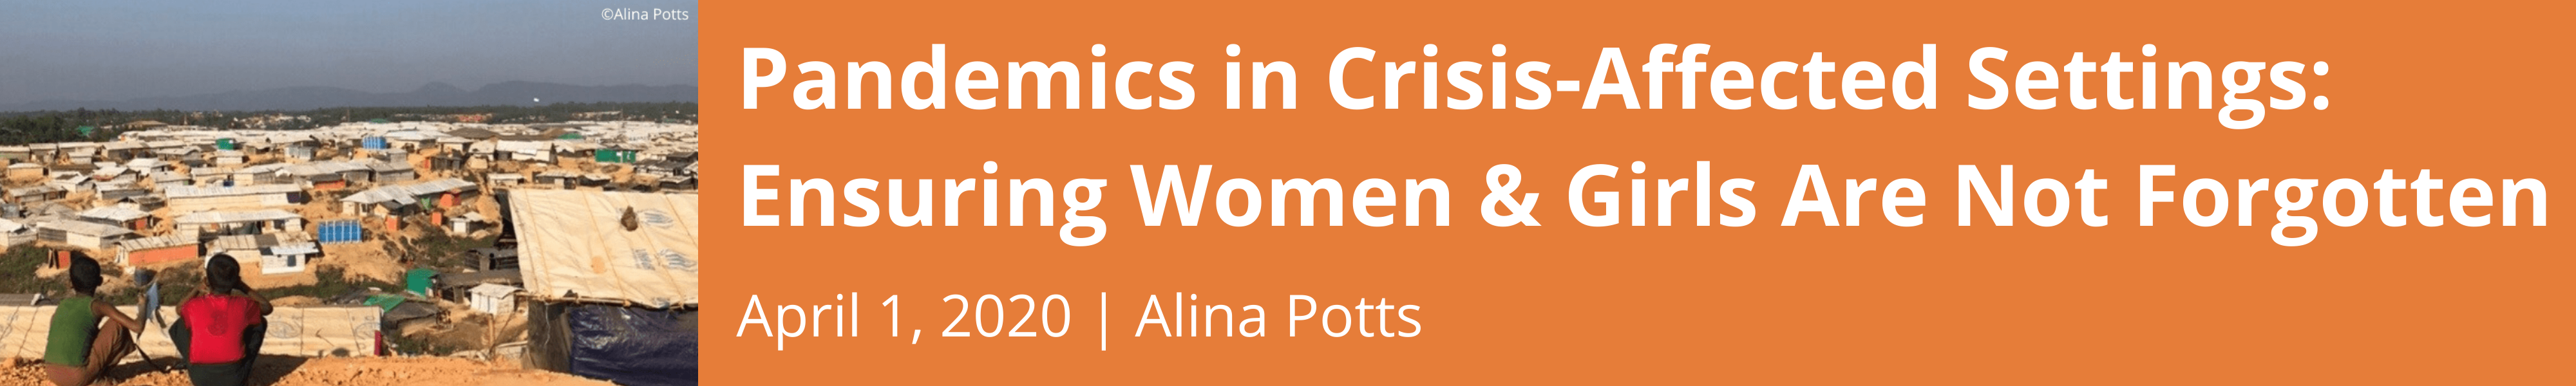 Pandemics in Crisis-Affected Settings: Ensuring Women & Girls Are Not Forgotten